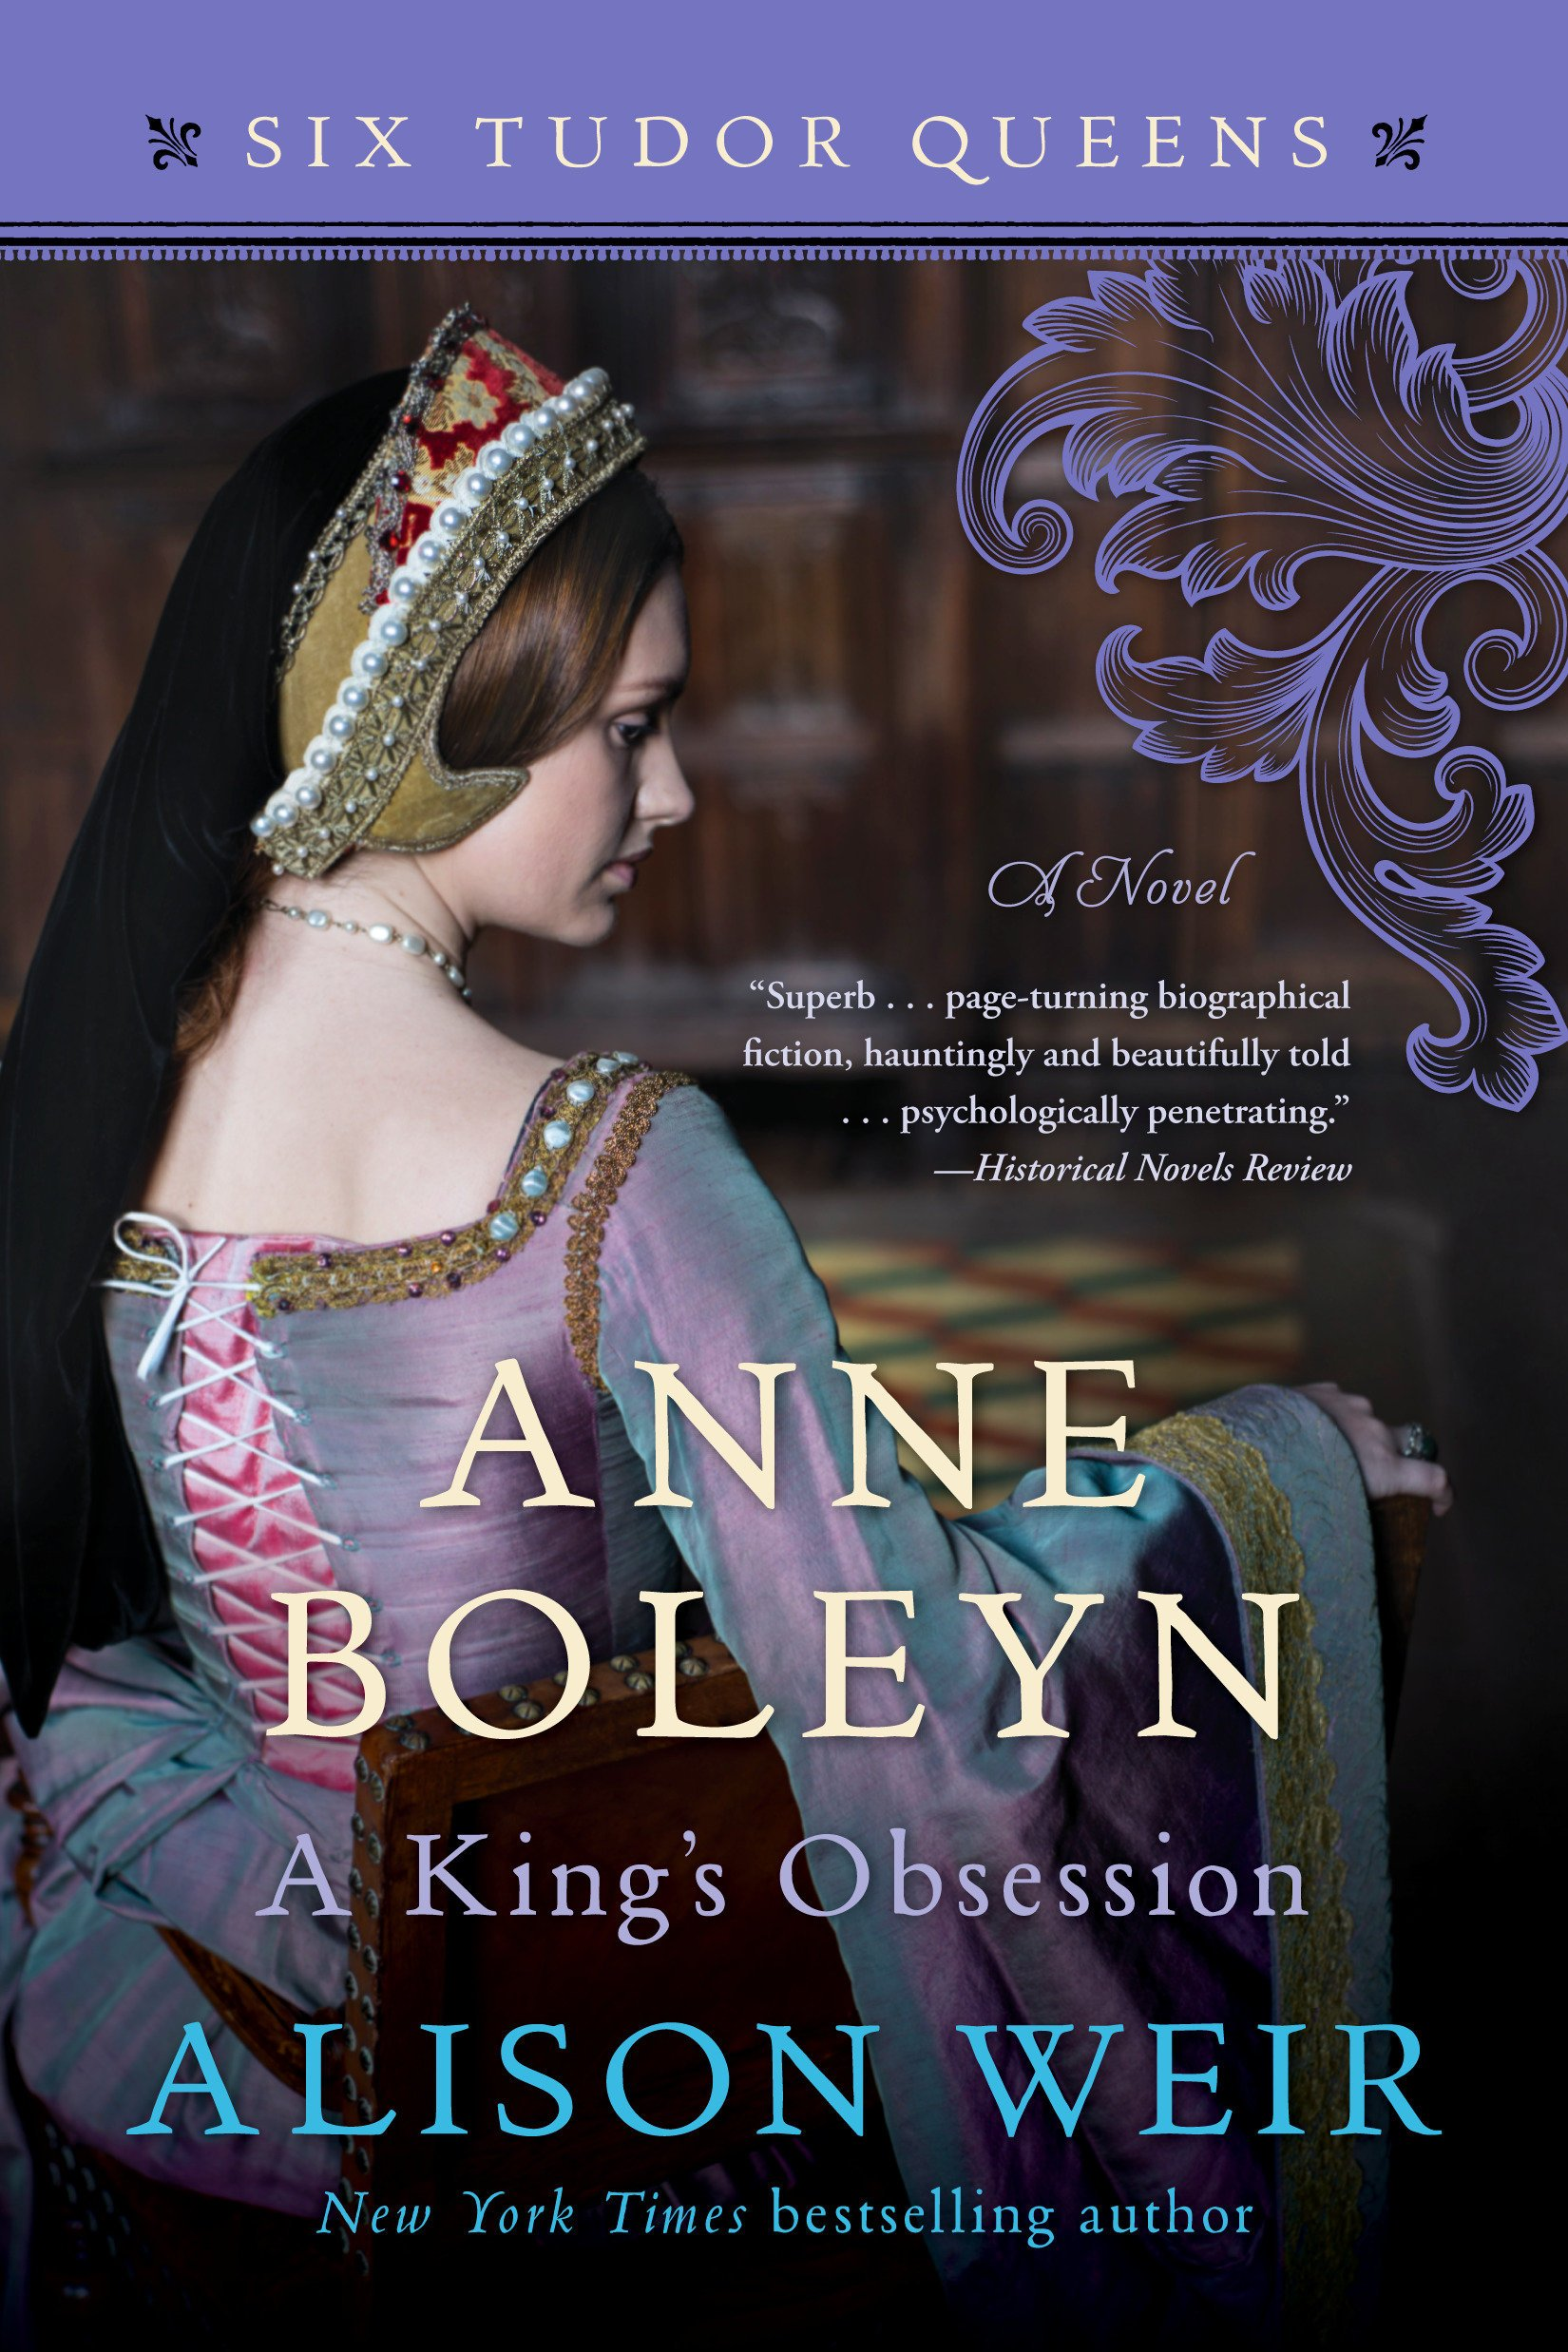 Anne Boleyn, A King's Obsession: A Novel (Six Tudor Queens) pdf